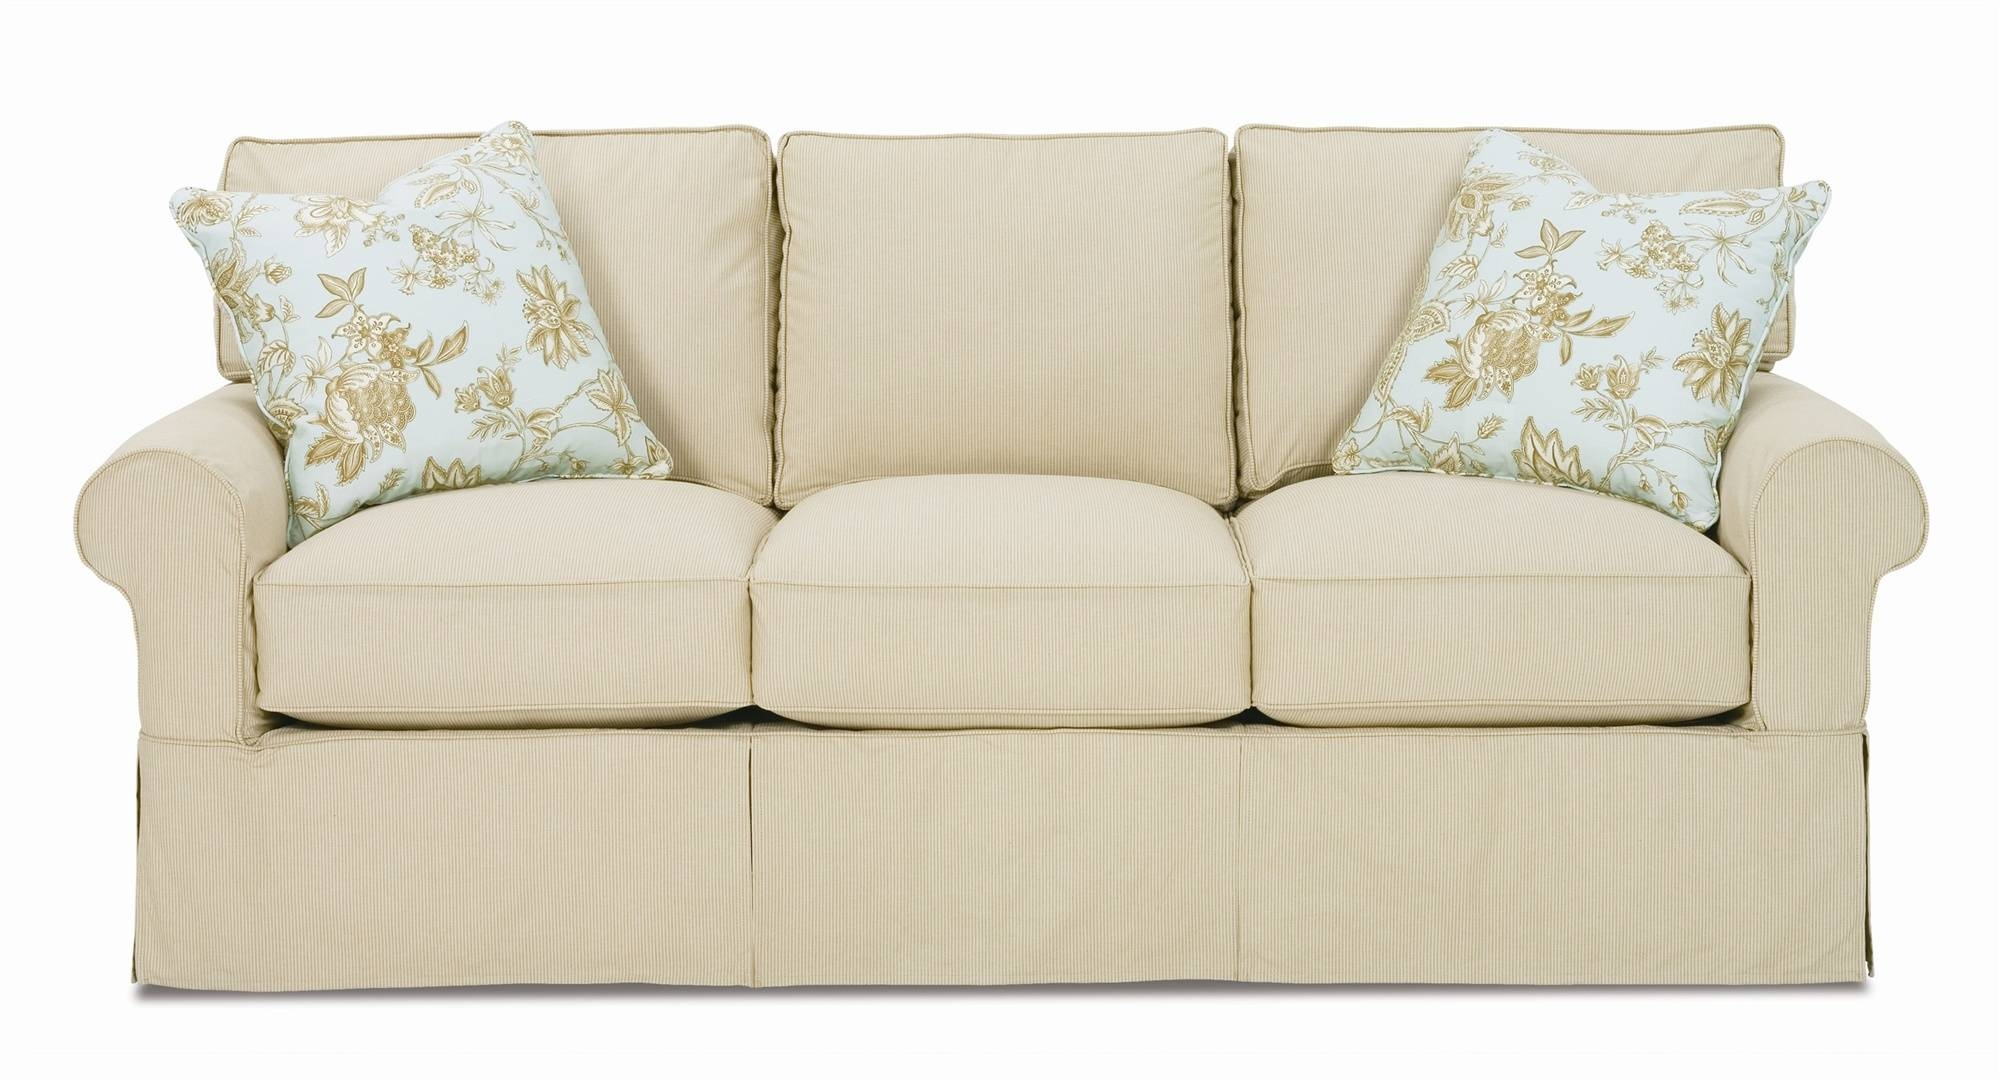 Couch And Chair Covers The Best Shabby Chic Sofas Cheap